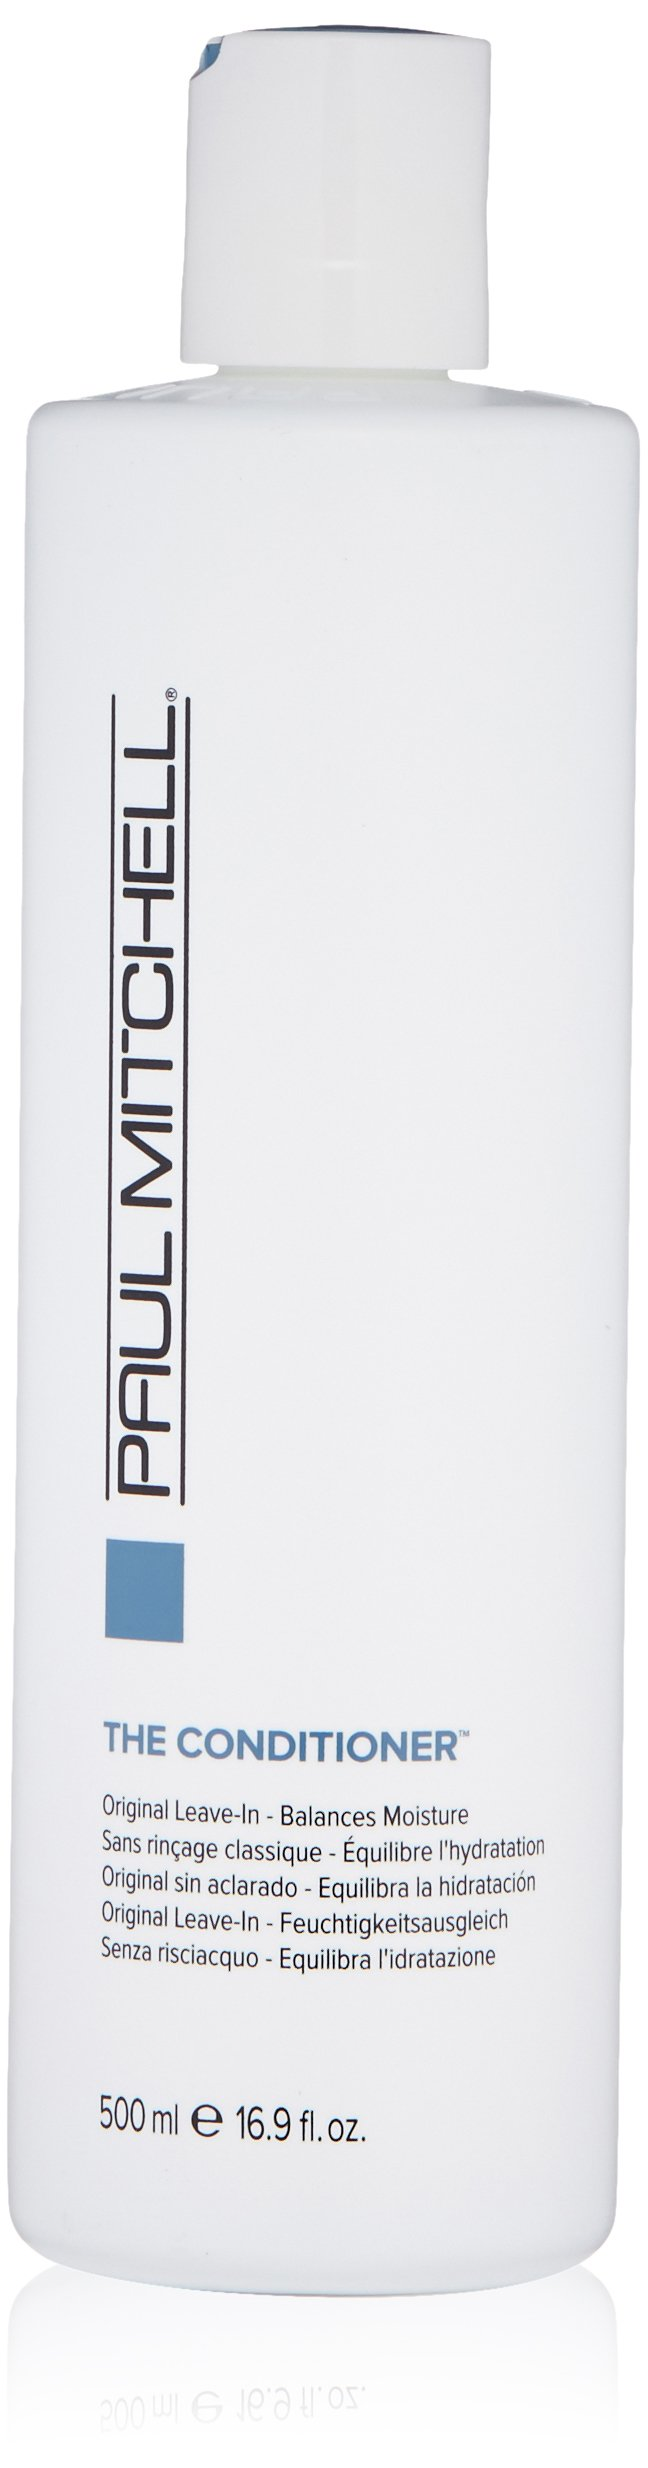 Paul Mitchell The Conditioner,16.9 Fl Oz by Paul Mitchell